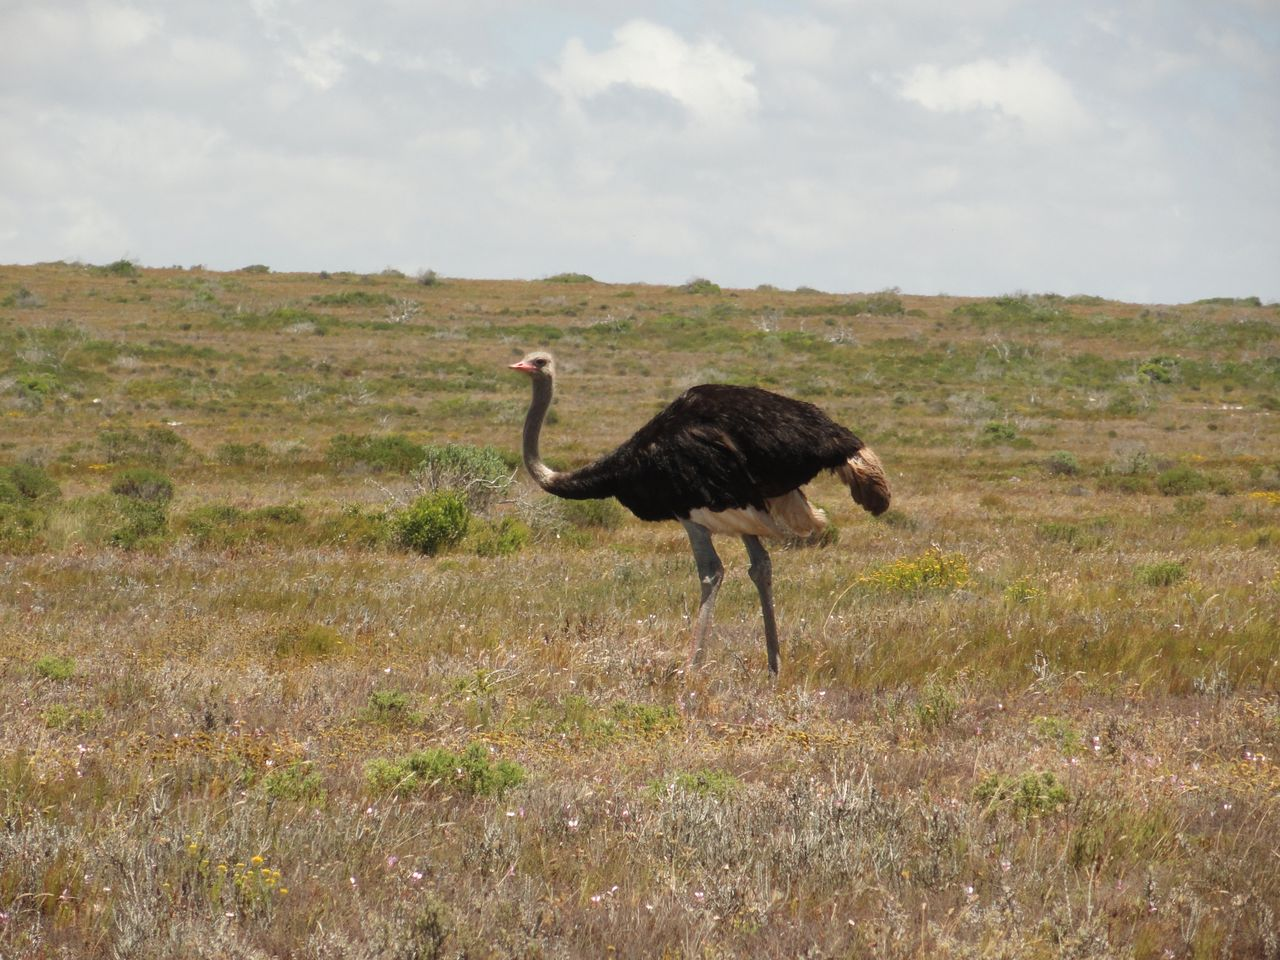 The Gracefully Awkward Ostrich